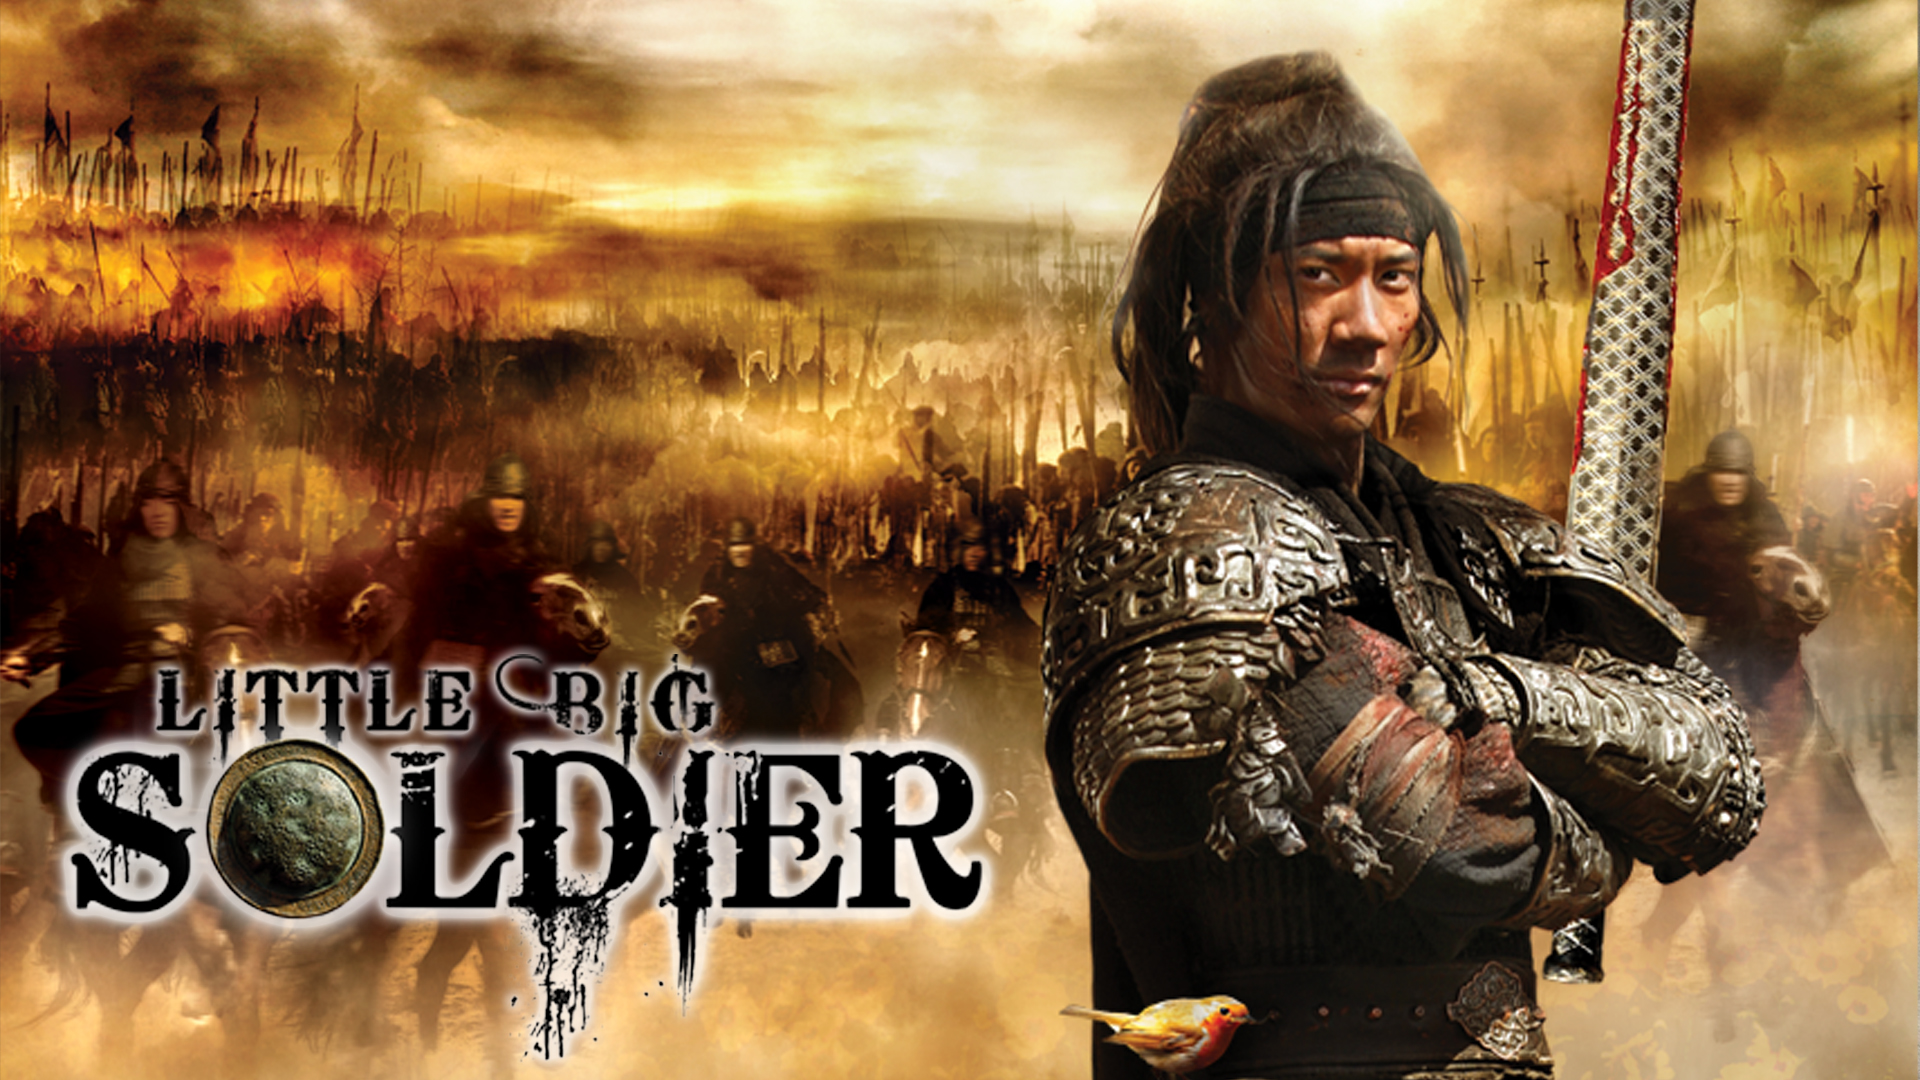 Little Big Soldier (English Subtitled)